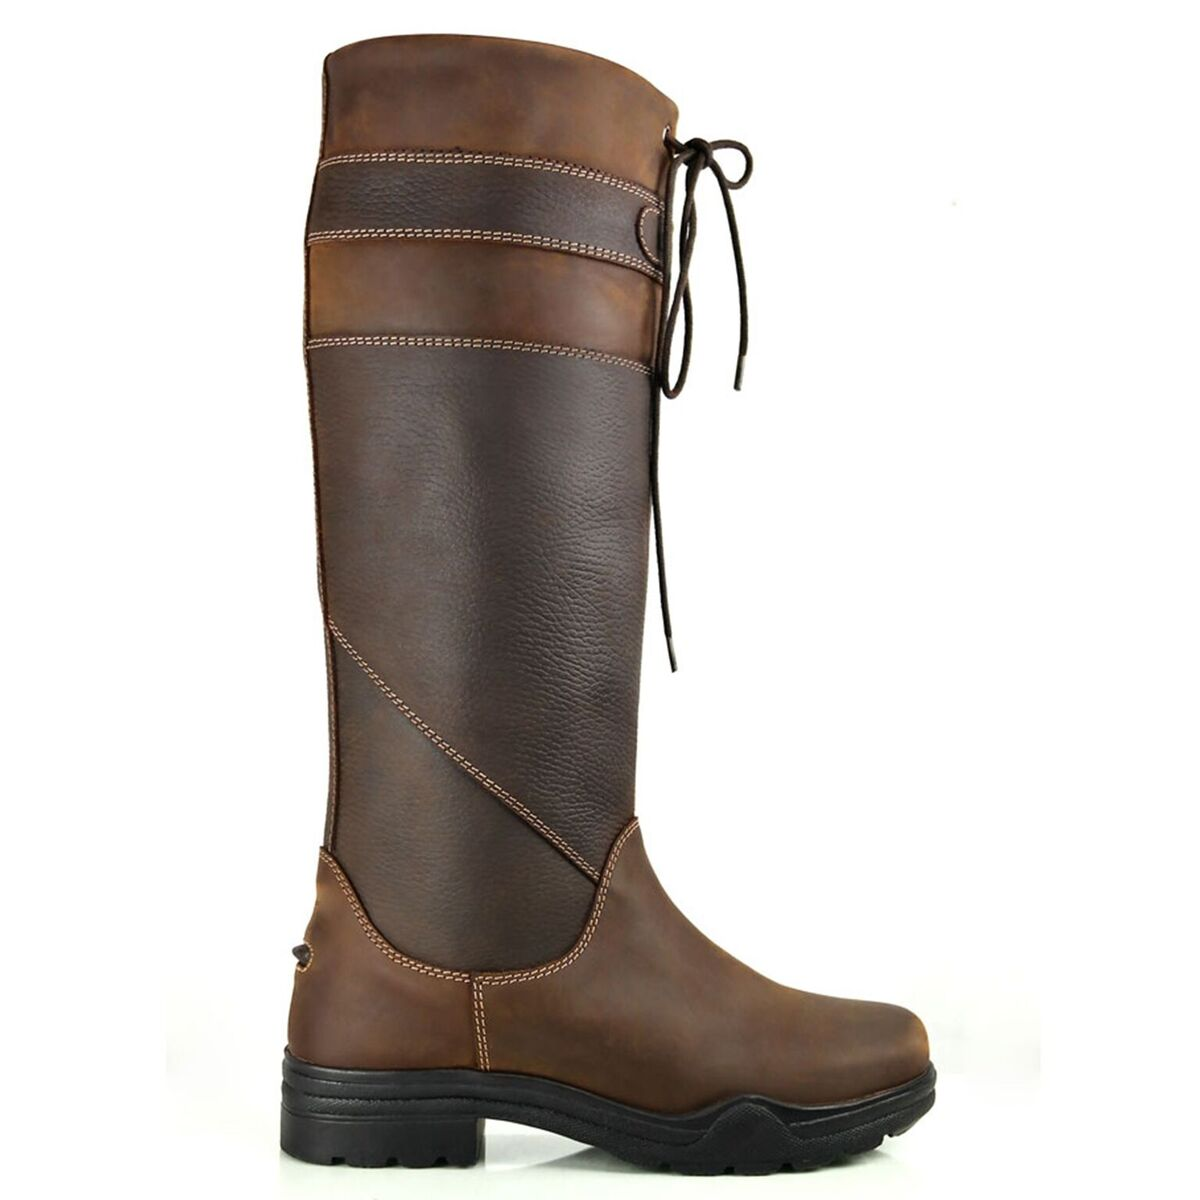 Waterproof winter boots fashion